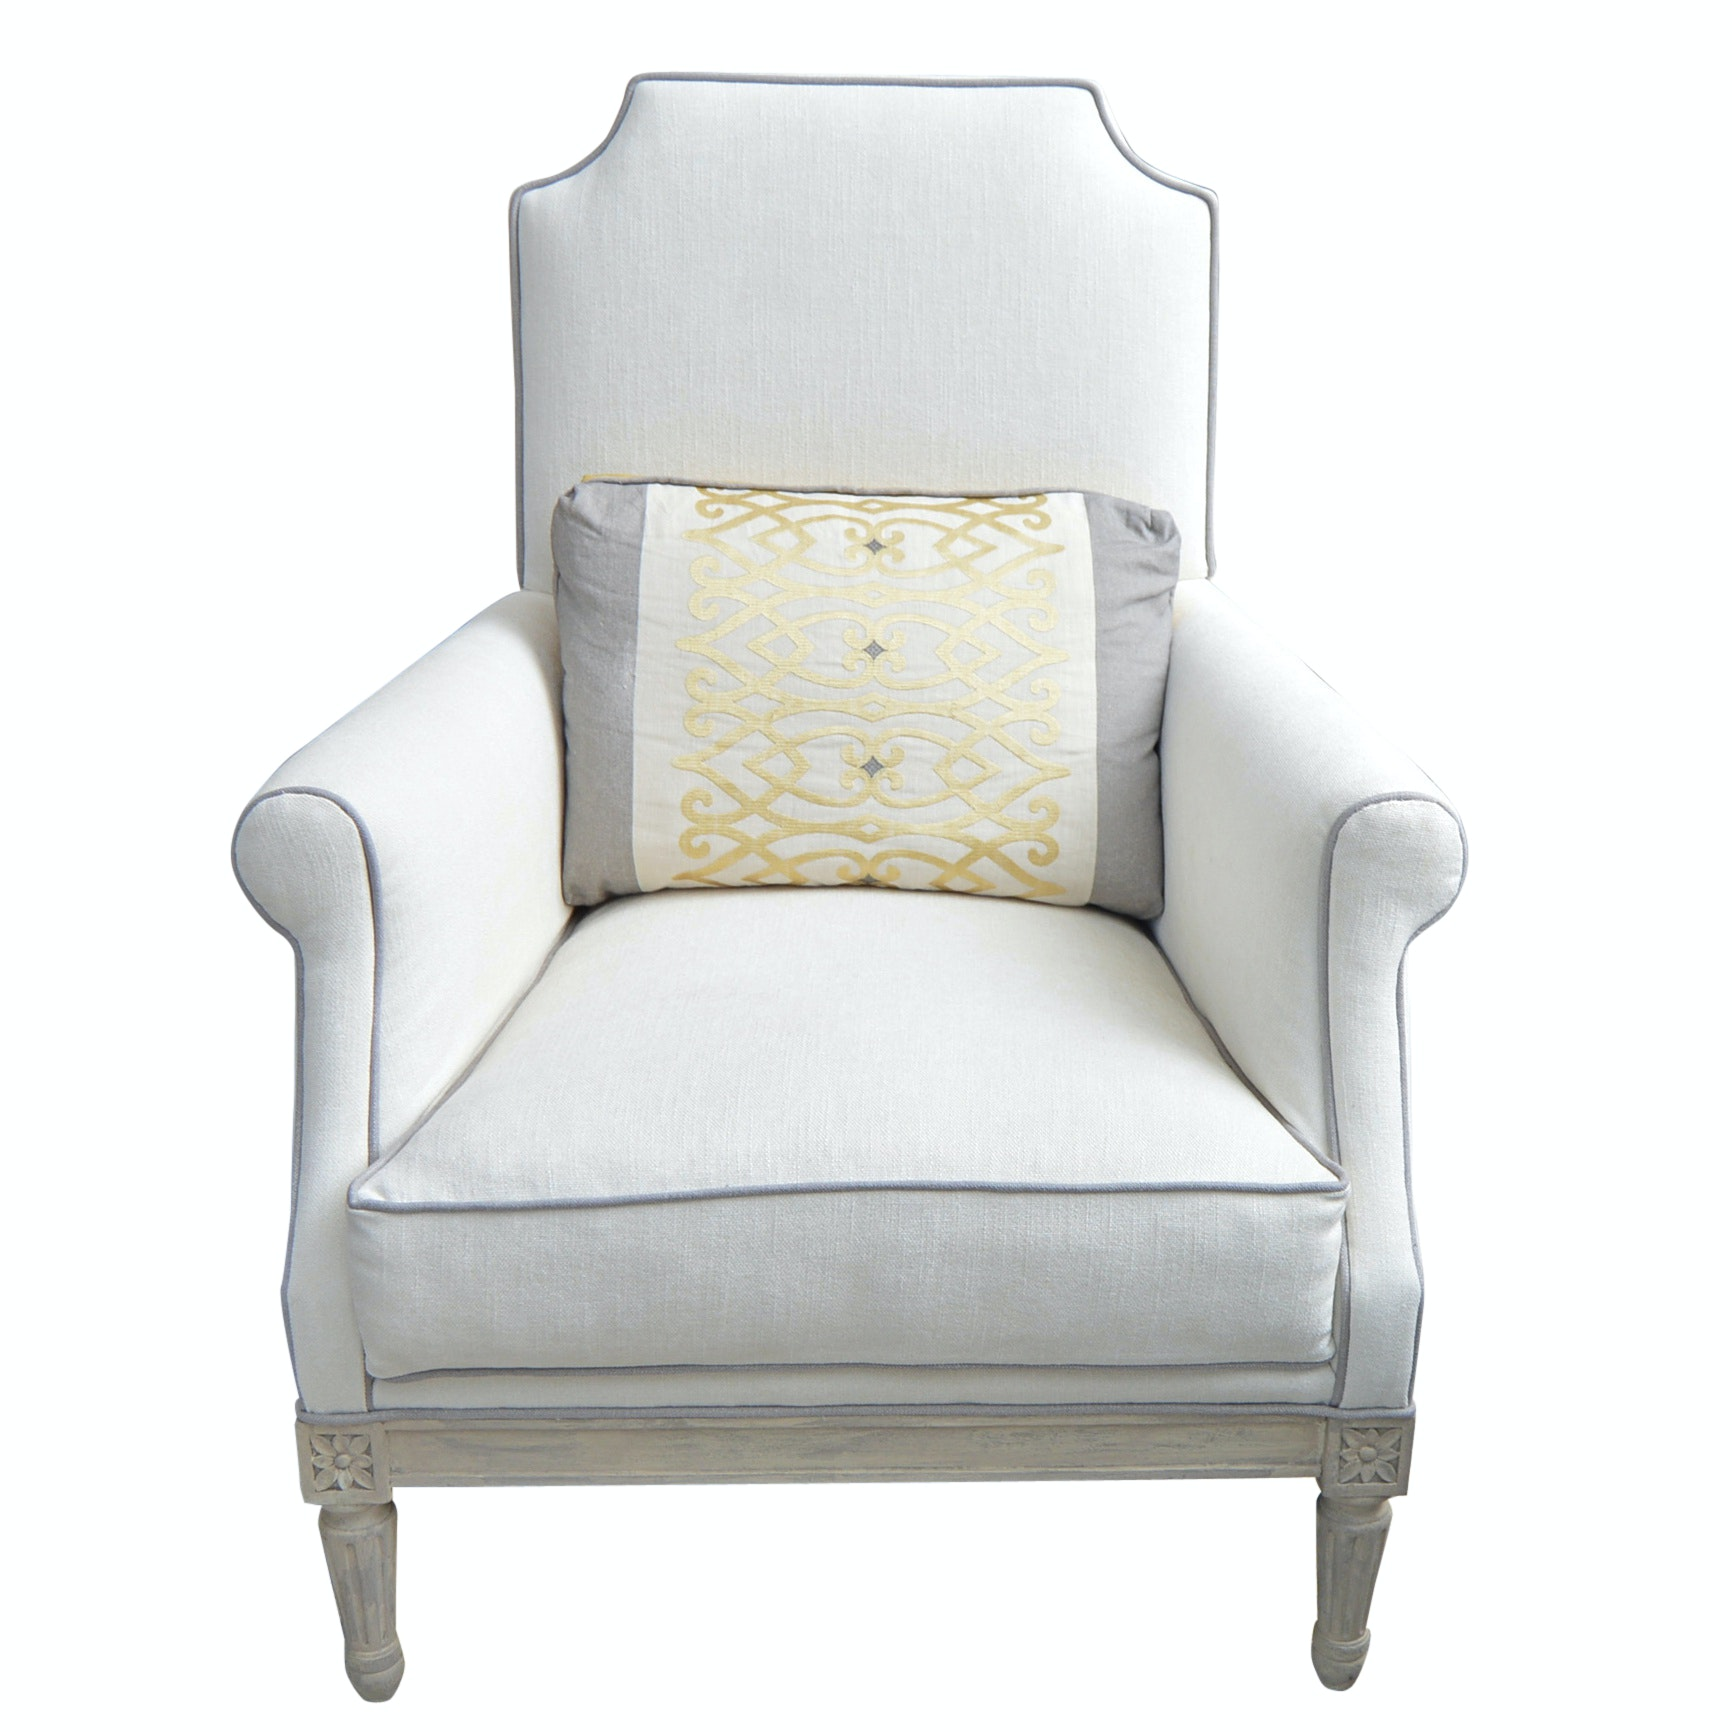 Louis XVI Style Upholstered Armchair from John-Richard